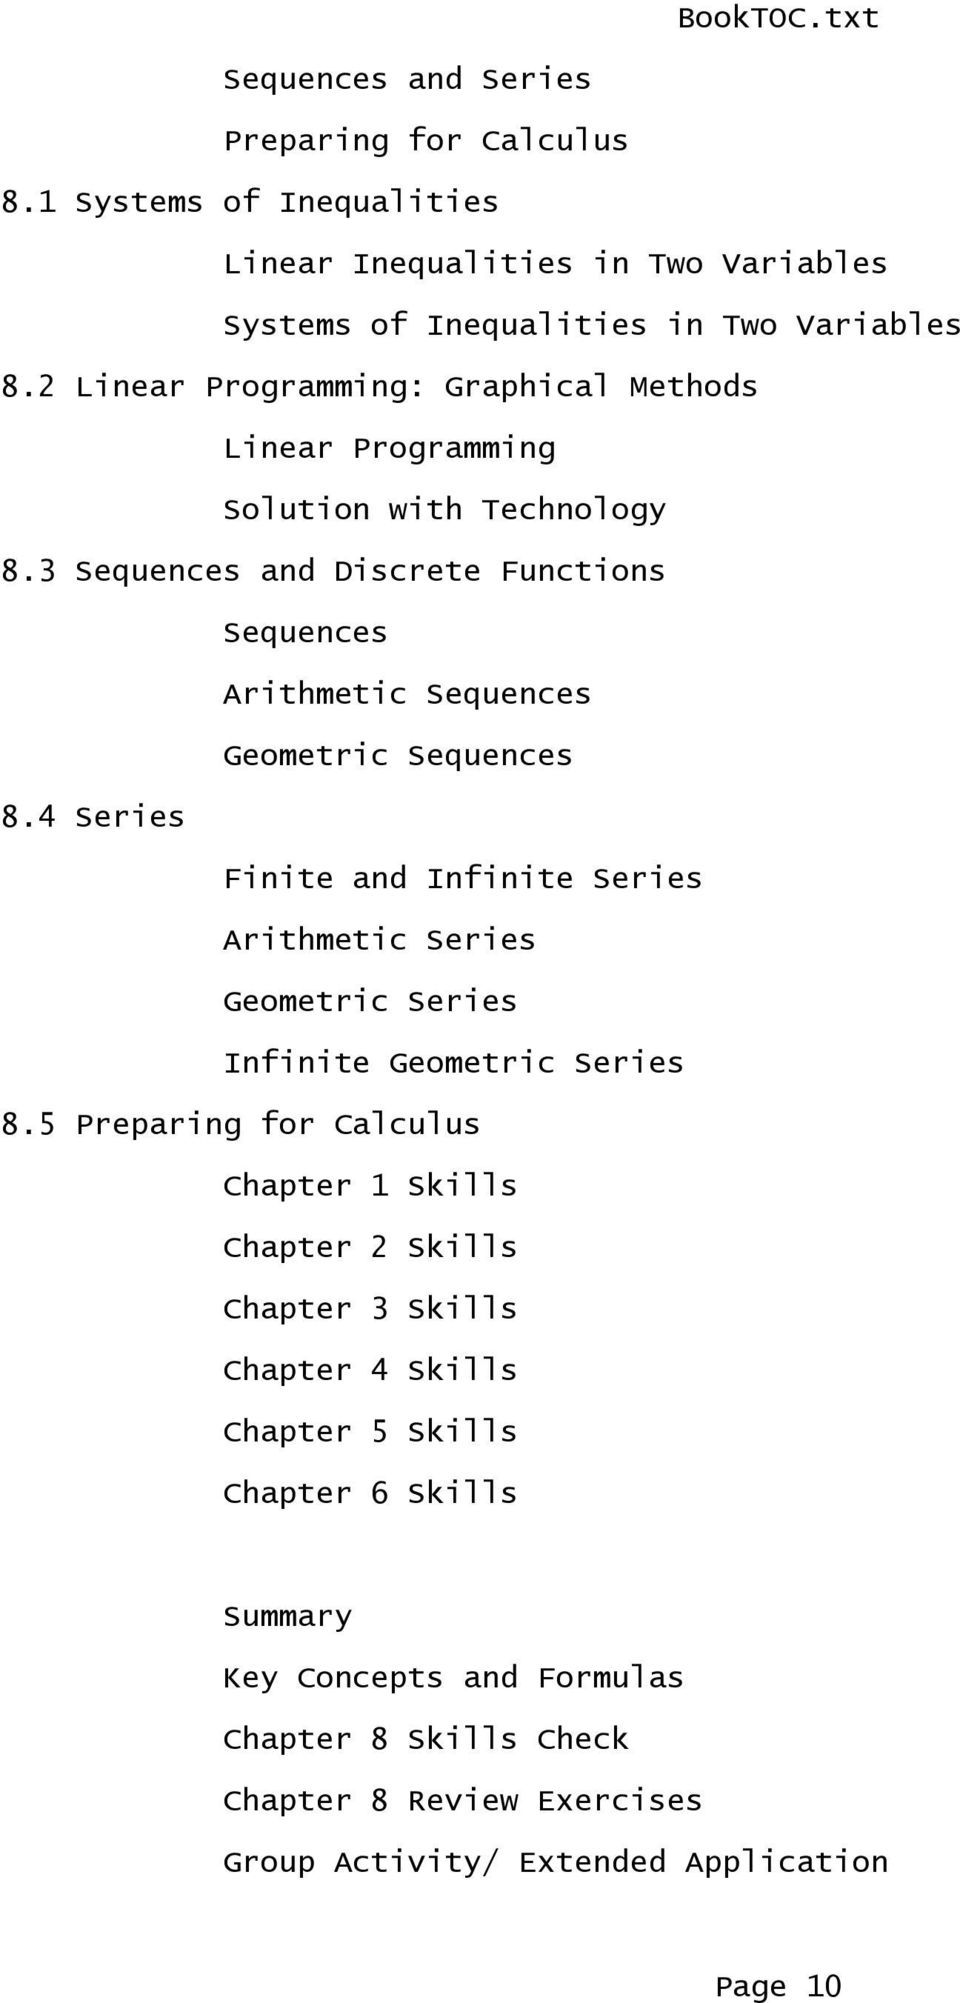 3 Sequences and Discrete Functions Sequences Arithmetic Sequences Geometric Sequences 8.